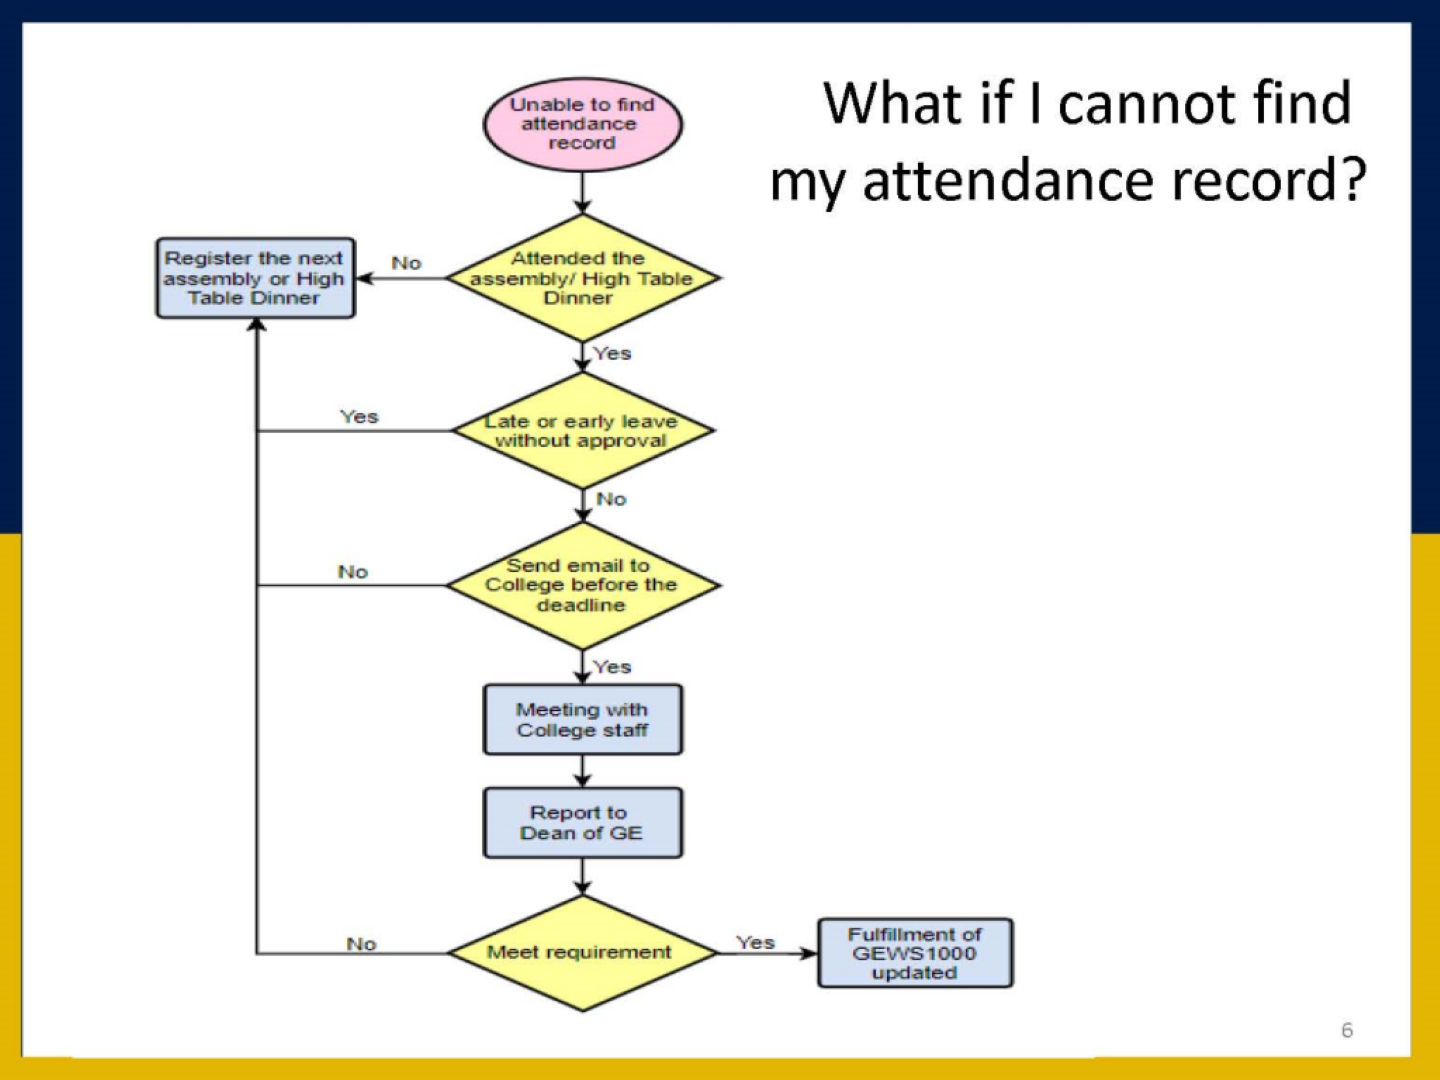 Unable to Find Attendance Record